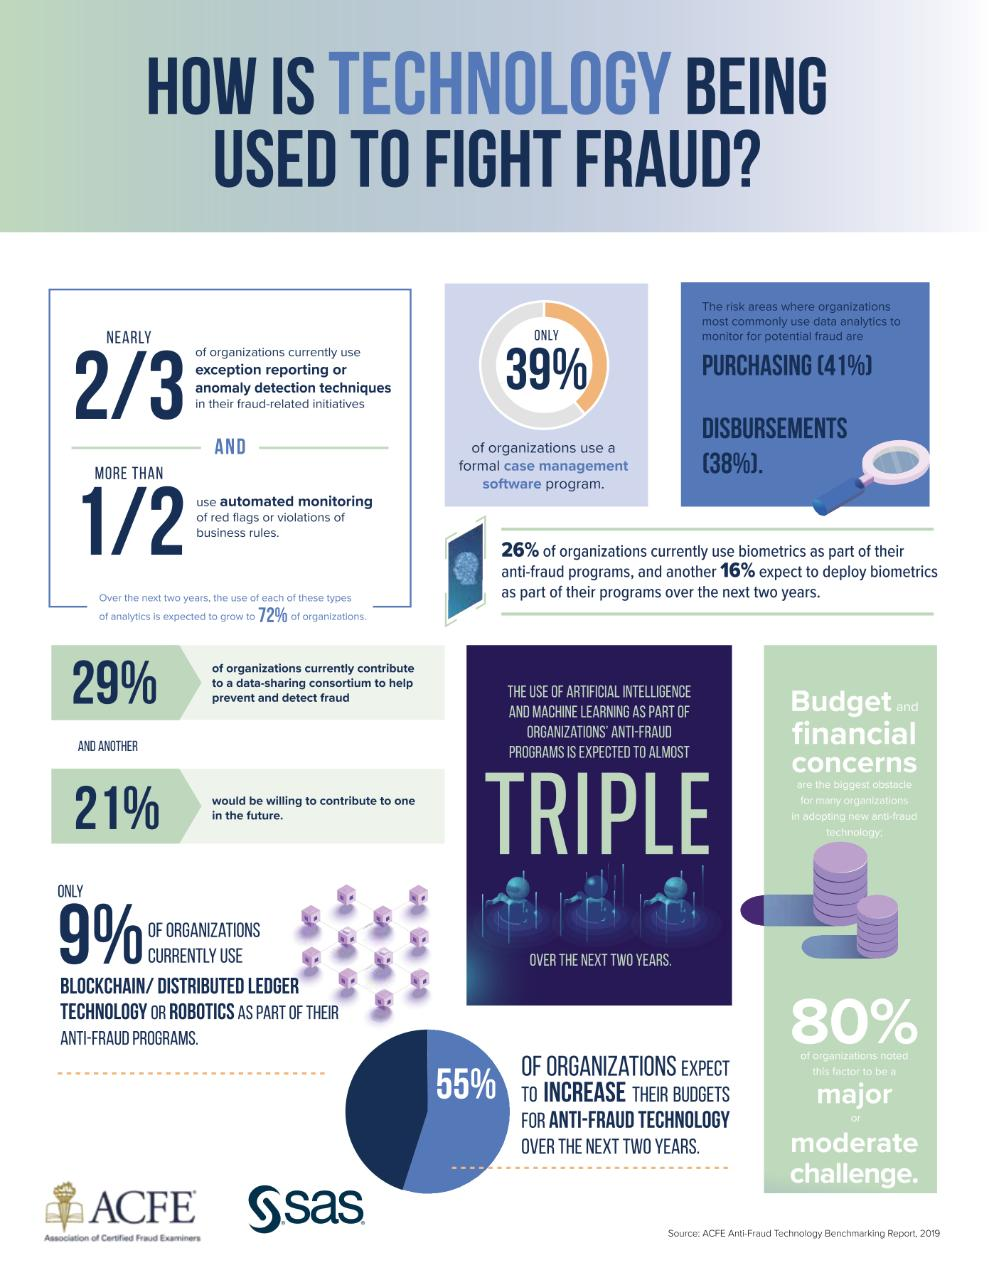 How is technology being used to fight fraud?